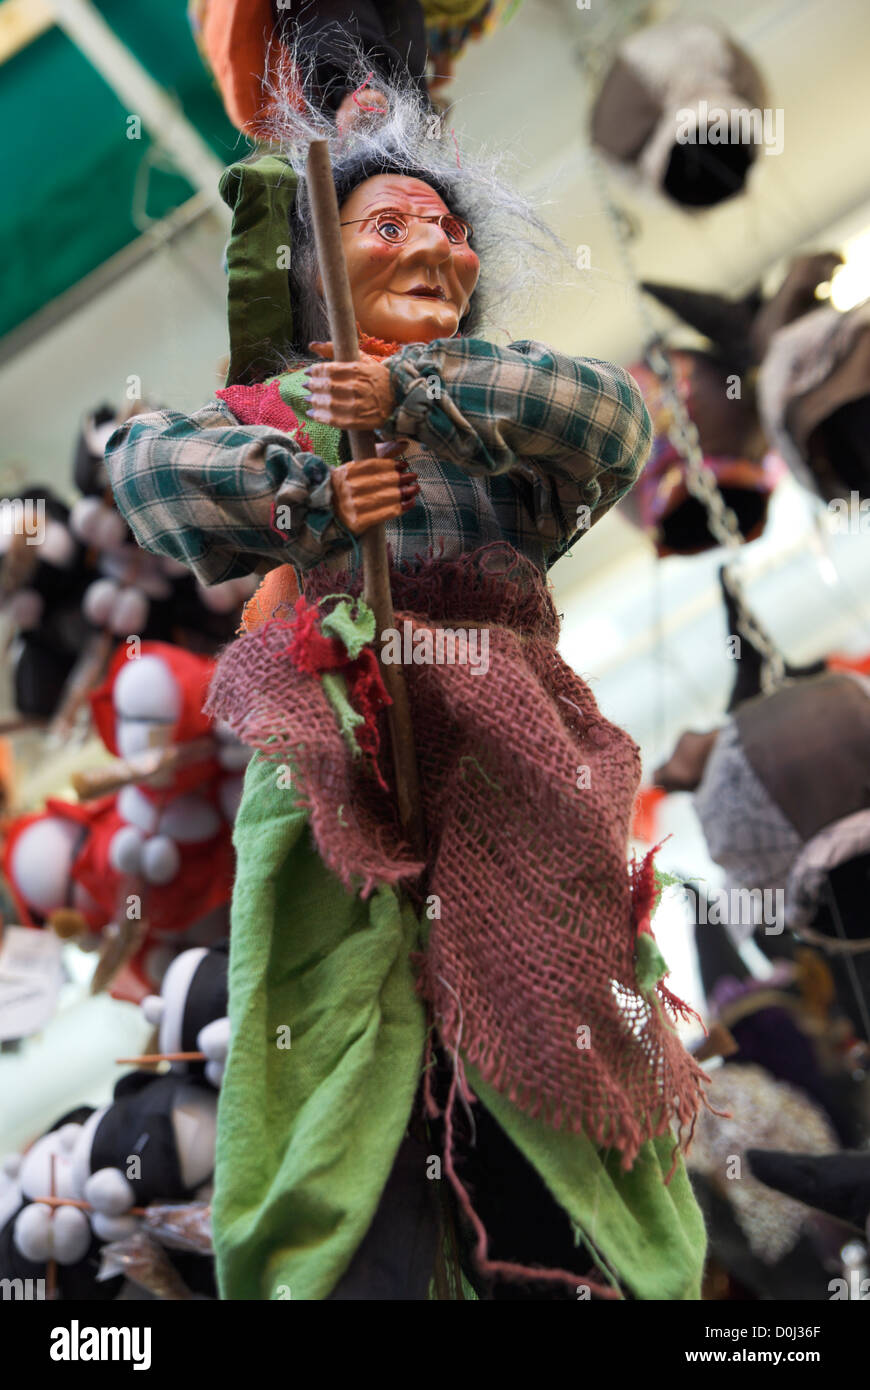 Befana Witch Doll Close Up Shallow DOF Piazza Navona Christmas Market Rome